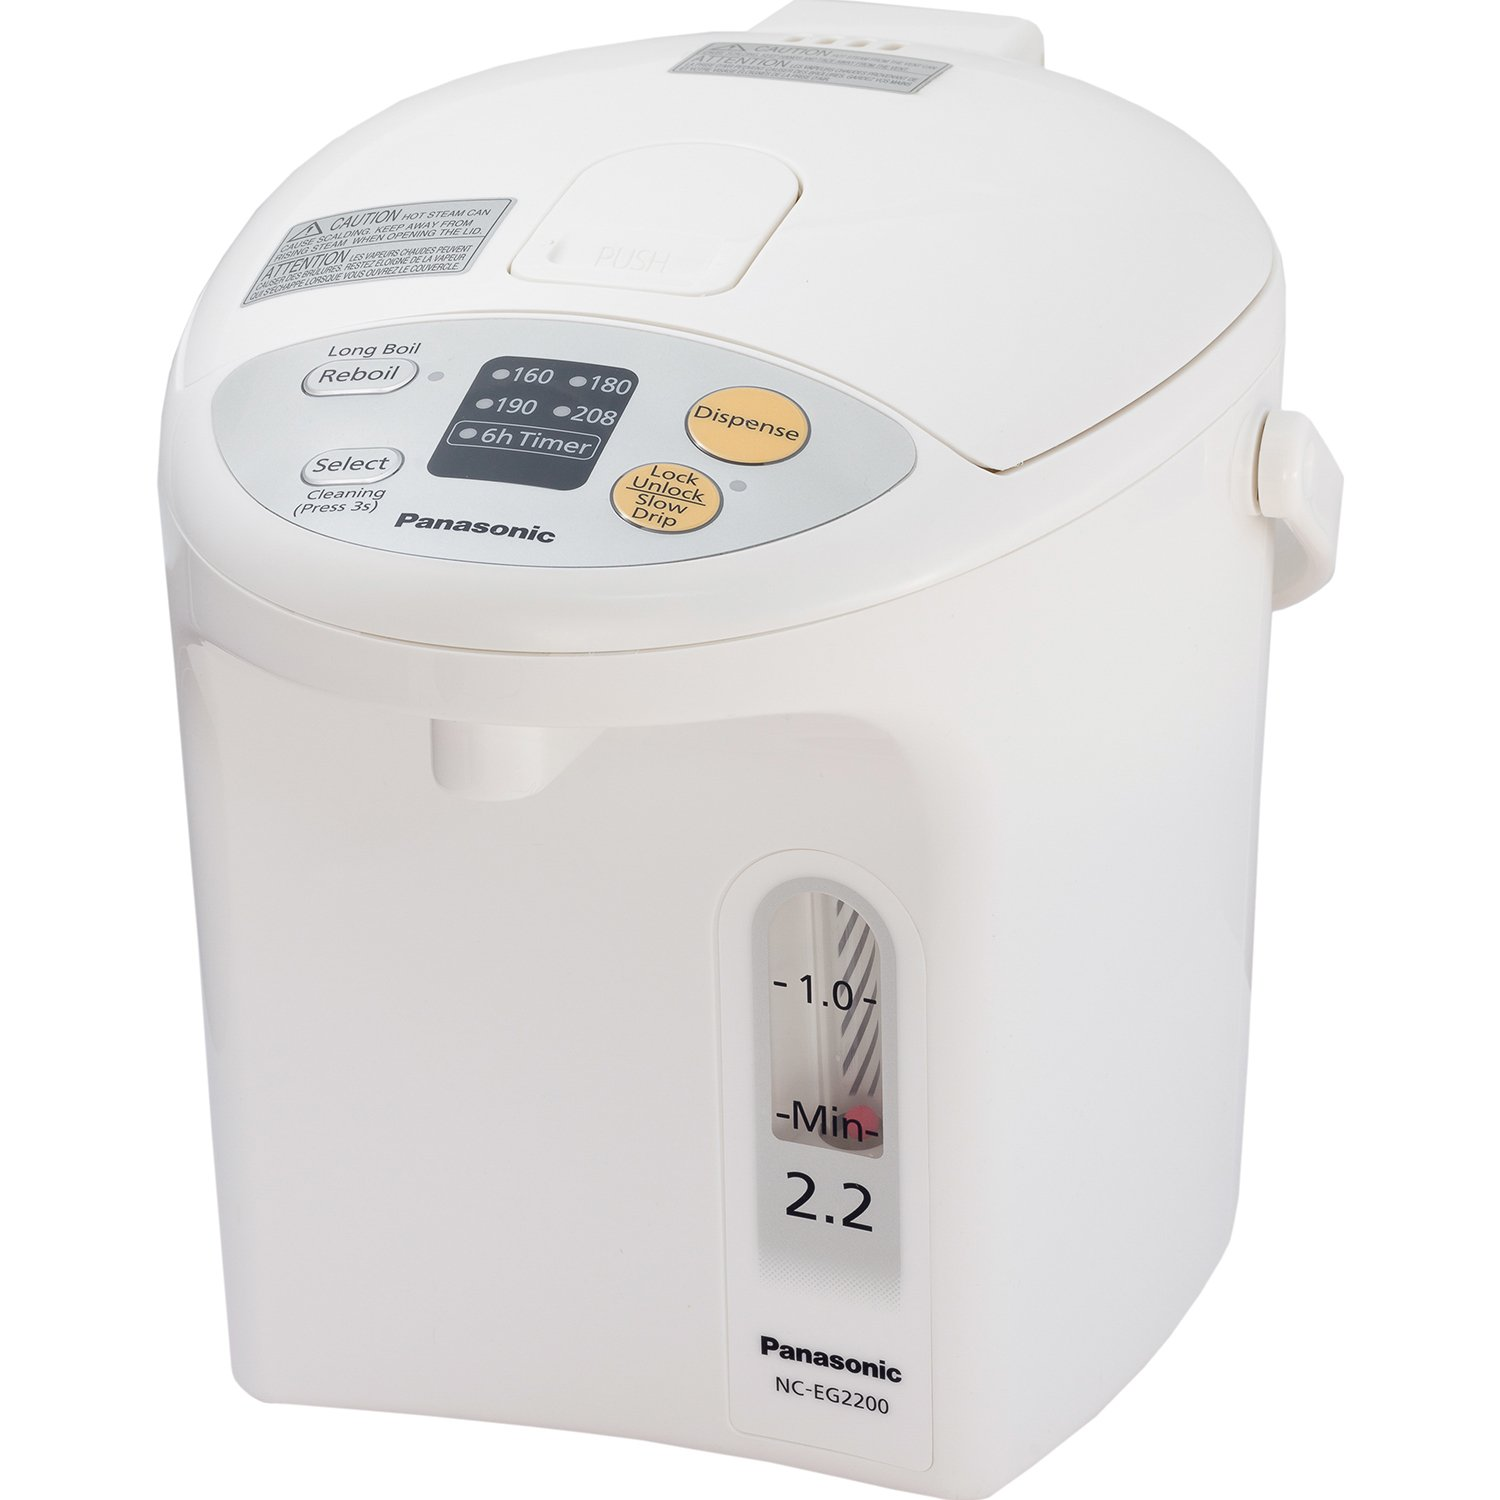 Panasonic NC-EG2200 Electric Thermo Pot, 2.3 quart, White by Panasonic (Image #1)